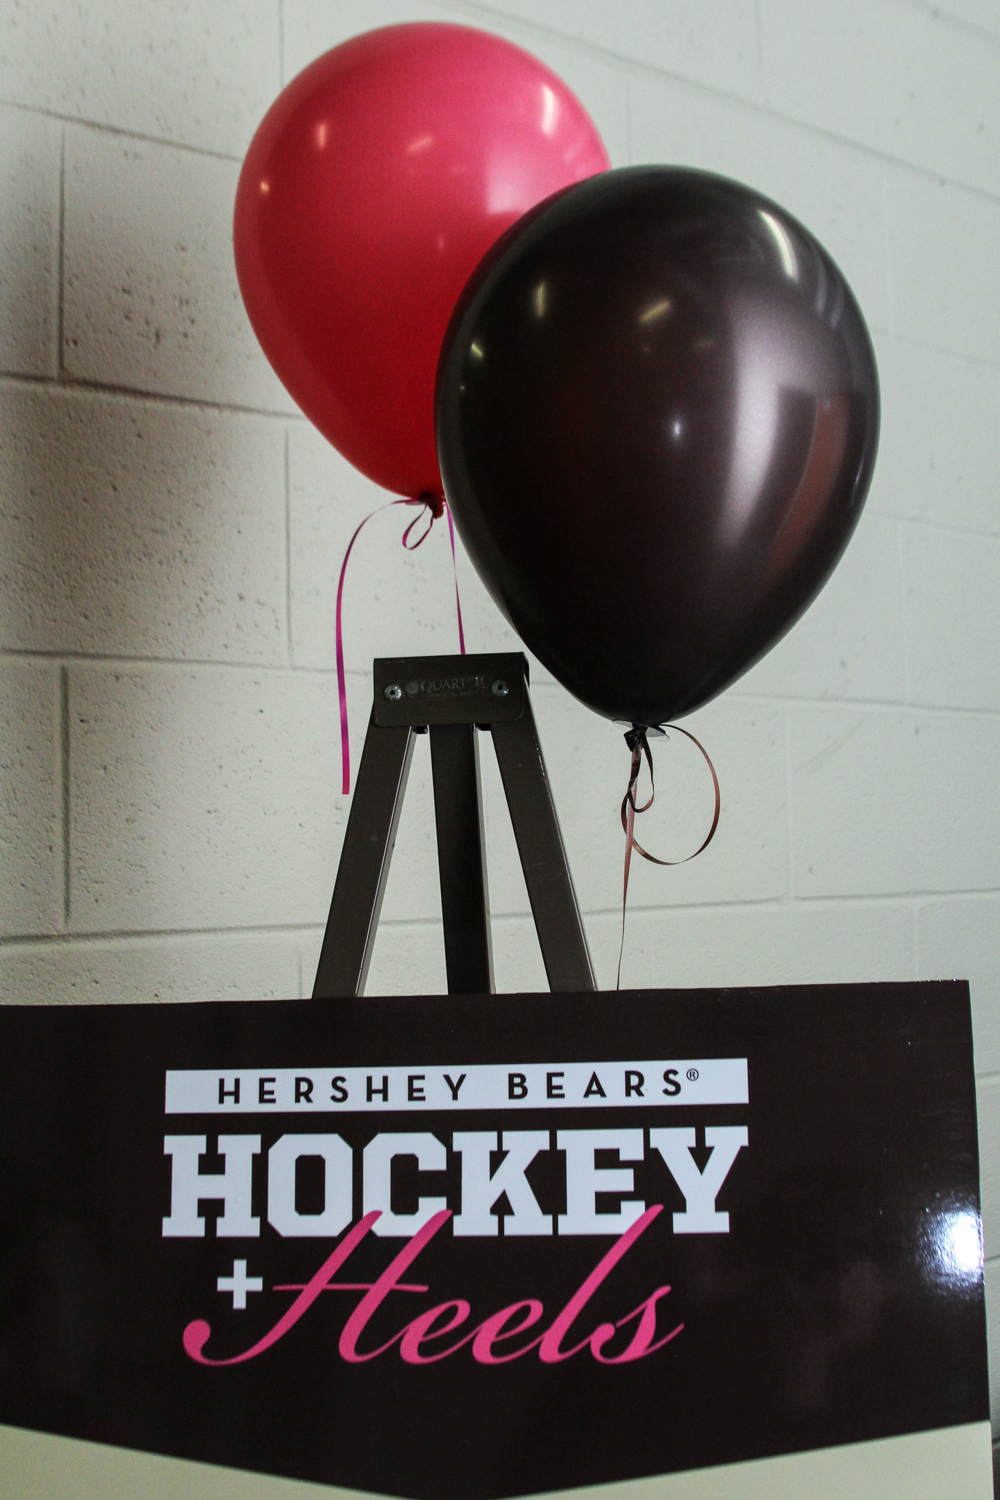 hershey bears hockey n heels-1